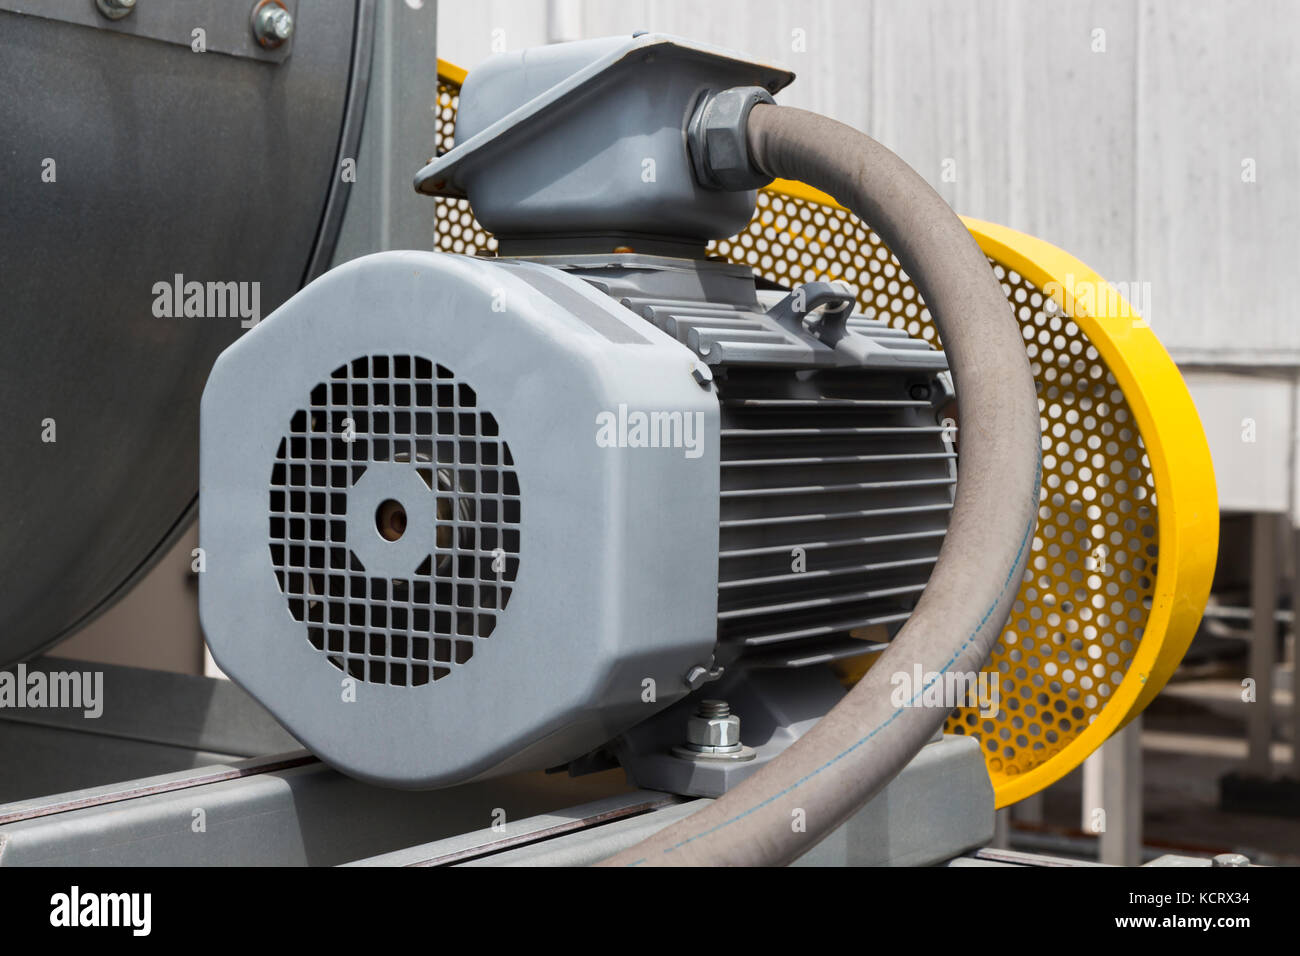 Motor Of Air Blower With Yellow Safety Guard Stock Photo Alamy